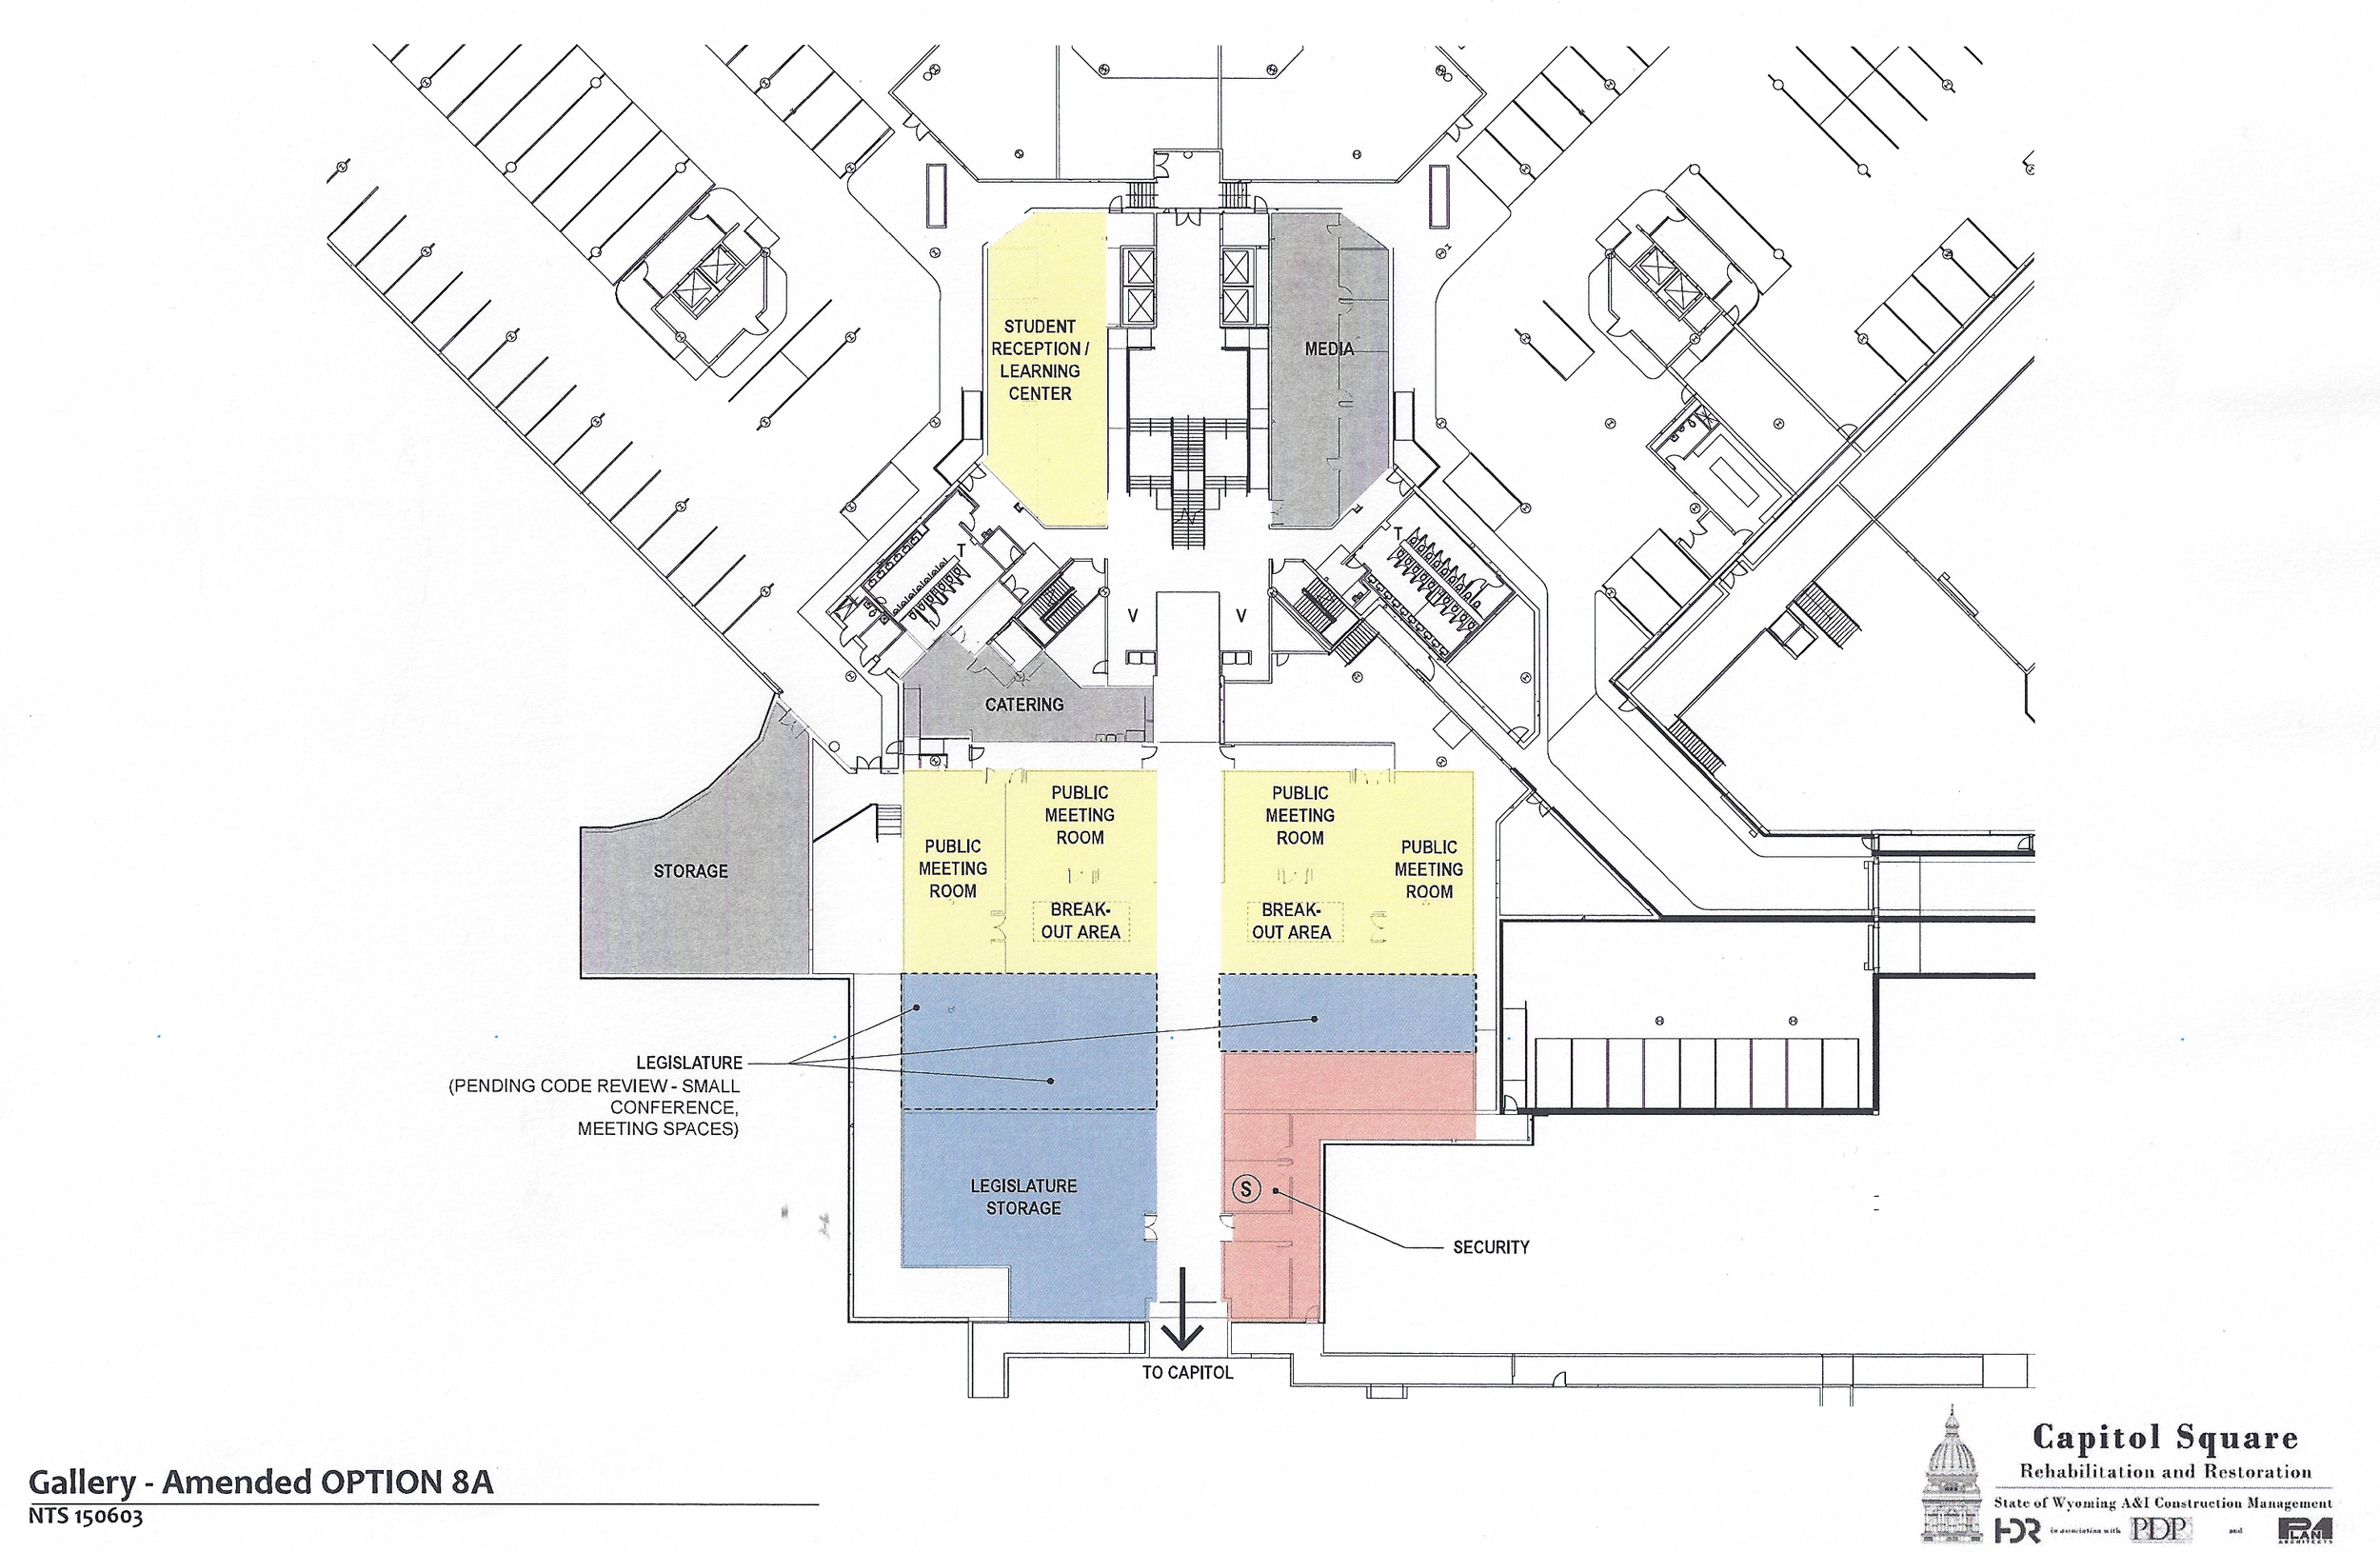 Preliminary design plans for the the gallery connecting the Capitol and the Herschler Building as of June 2, 2015.